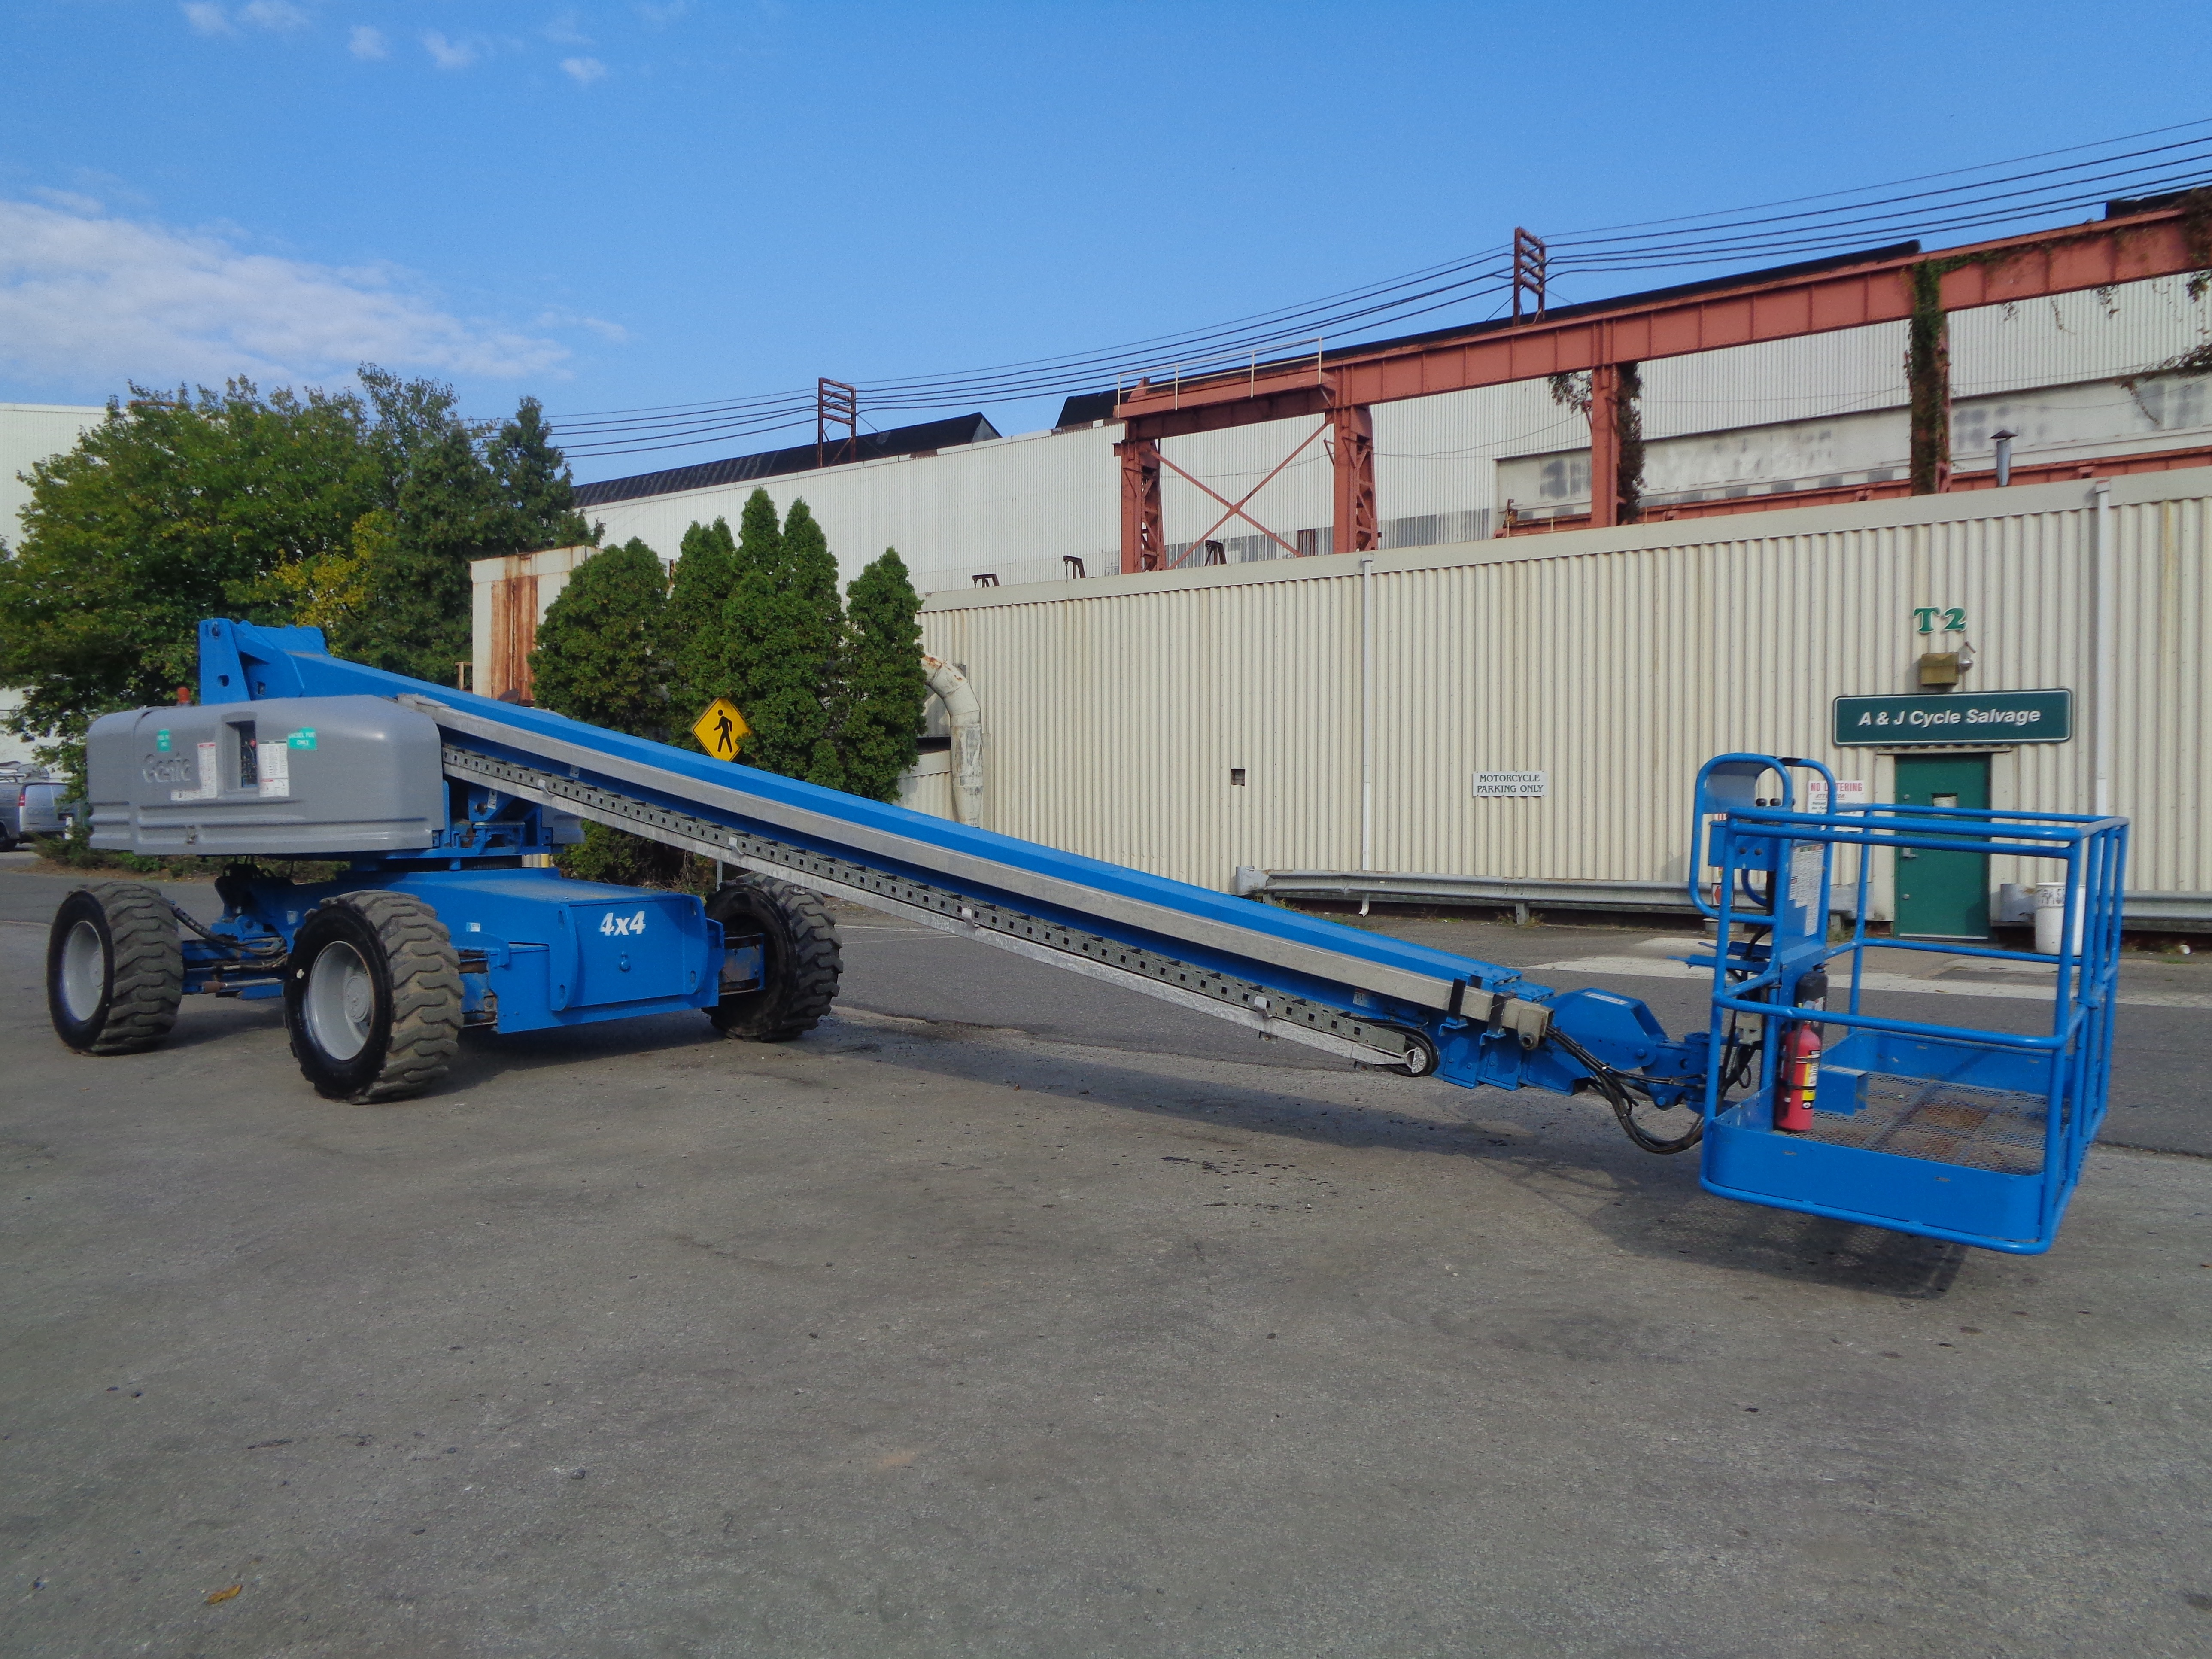 Genie S80 80ft Boom Lift - Image 11 of 22